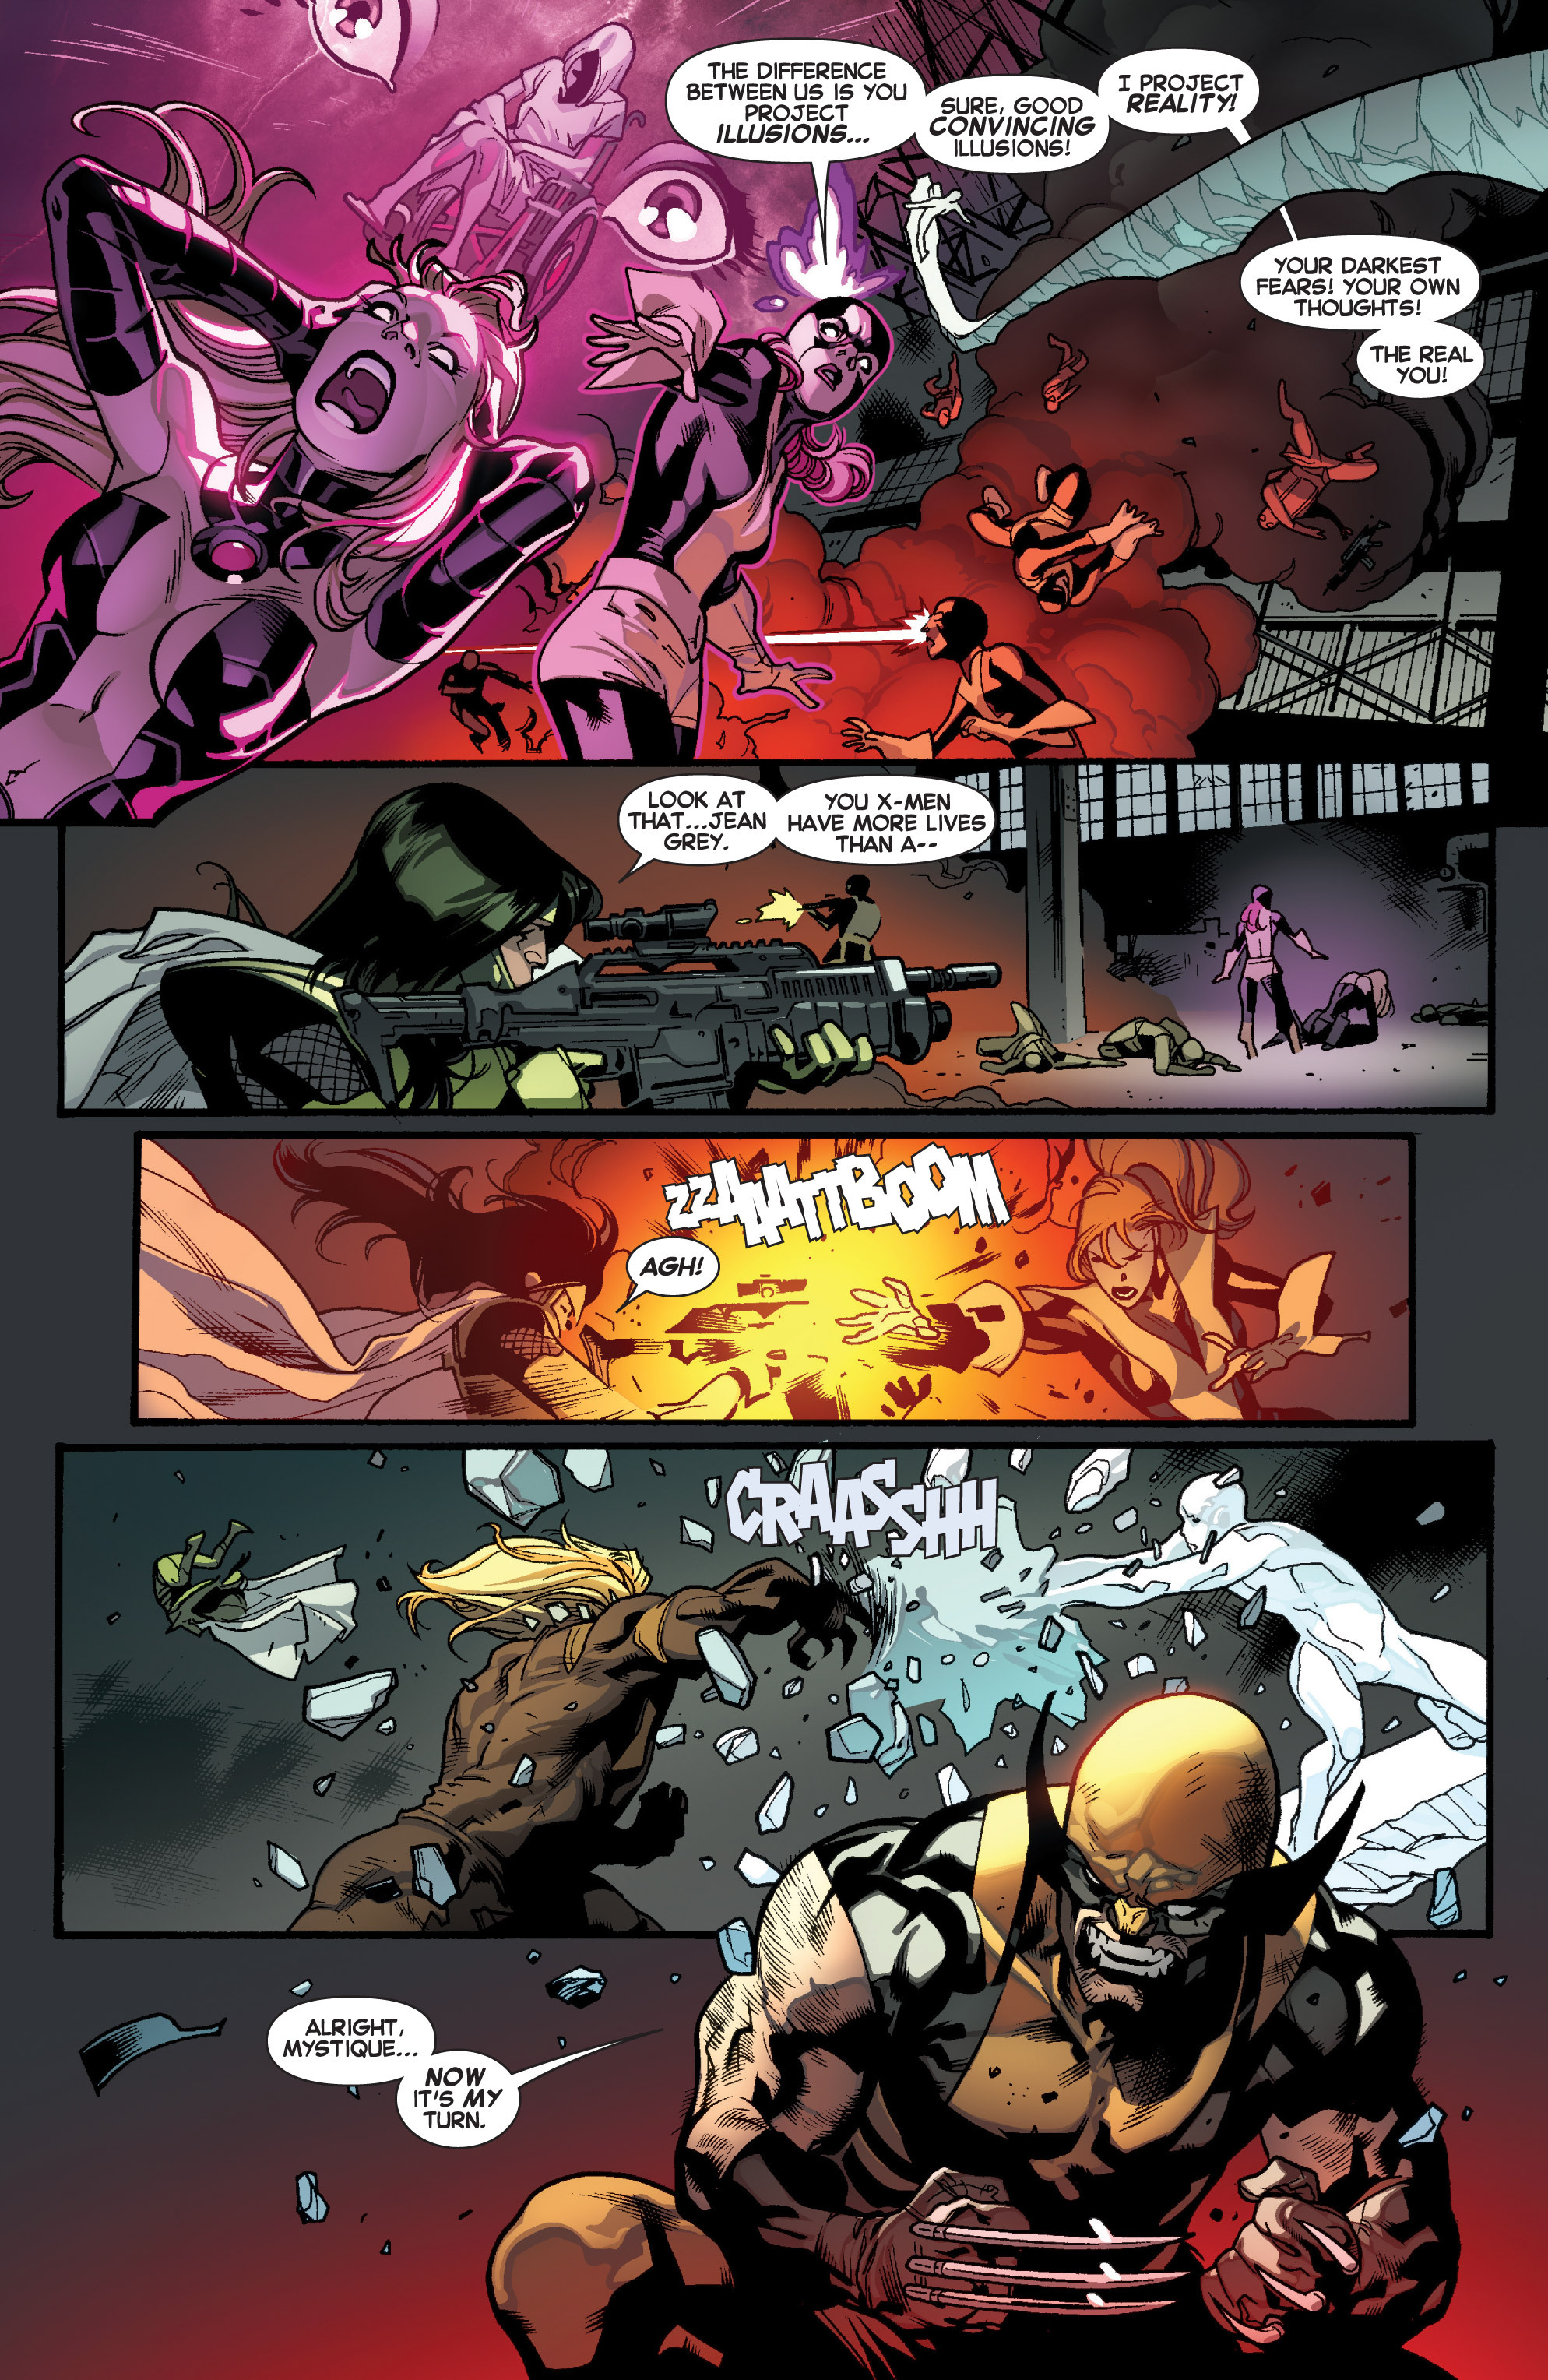 Read online All-New X-Men (2013) comic -  Issue # _Special - Out Of Their Depth - 76